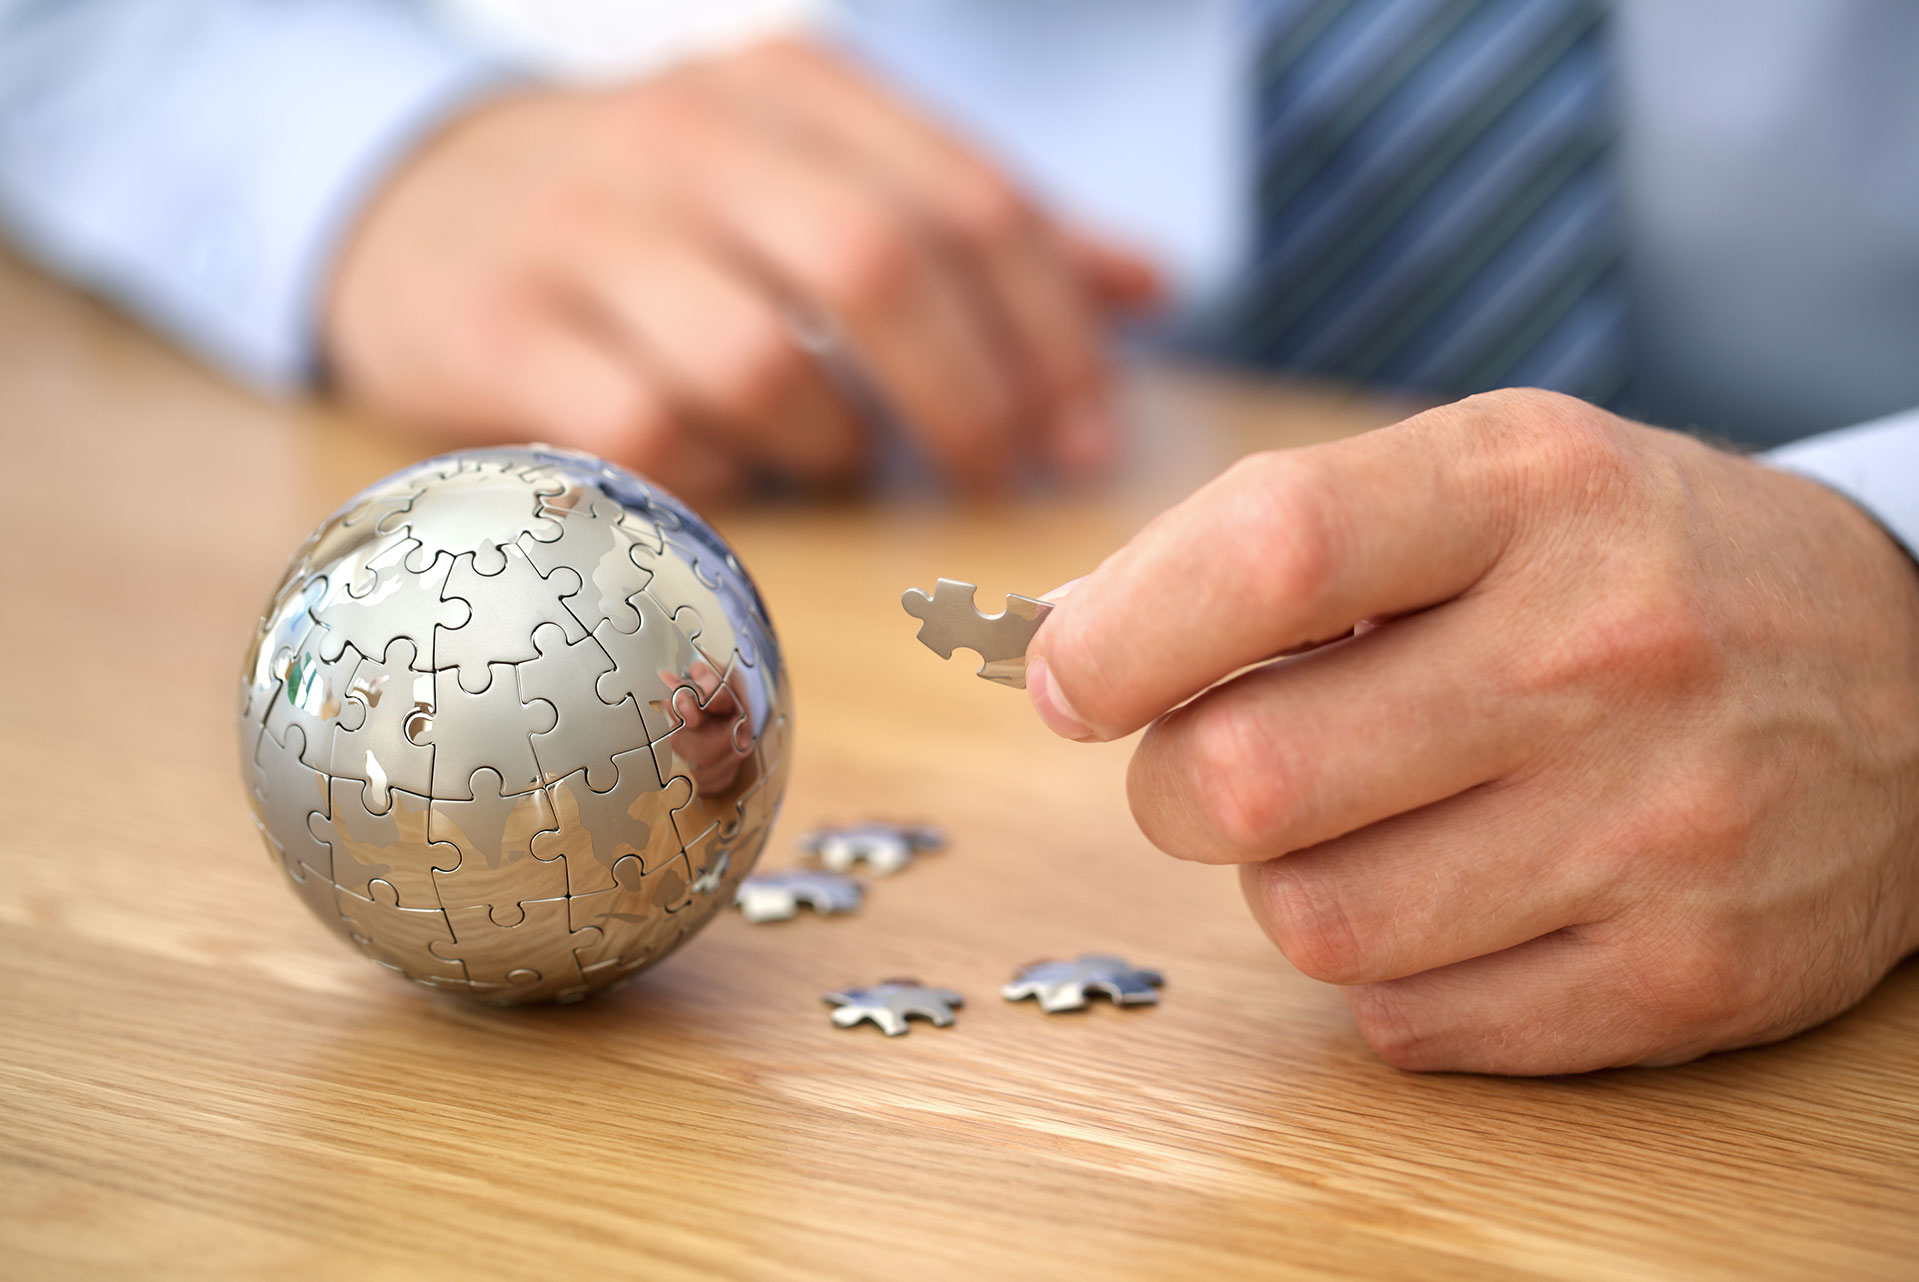 Man putting together a world puzzle